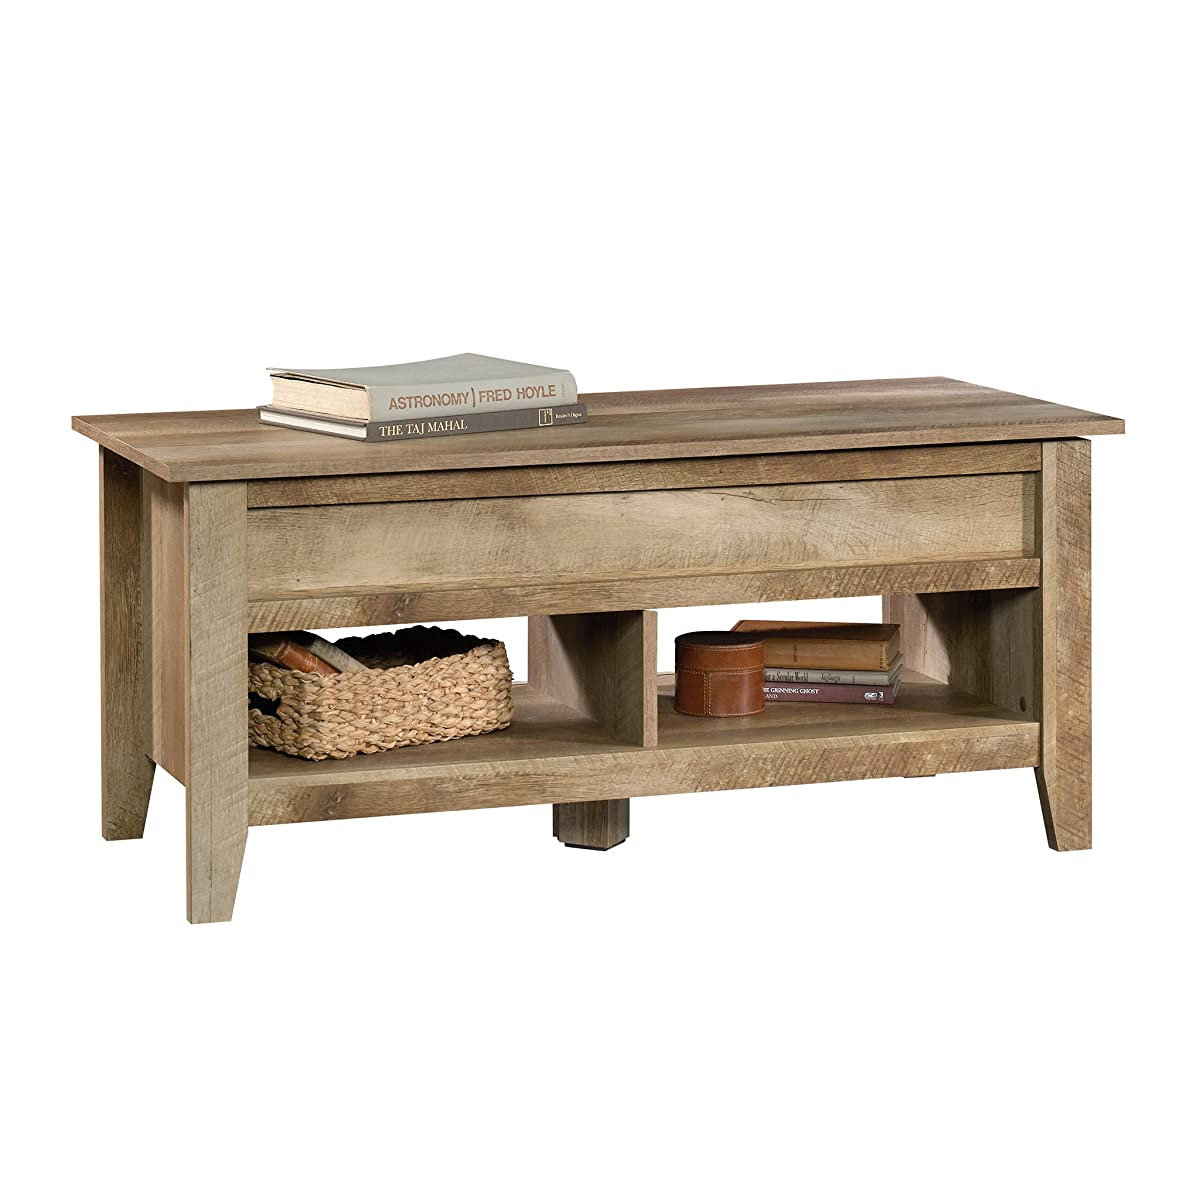 Sauder 420011 Coffee Table, Furniture, Craftsman Oak